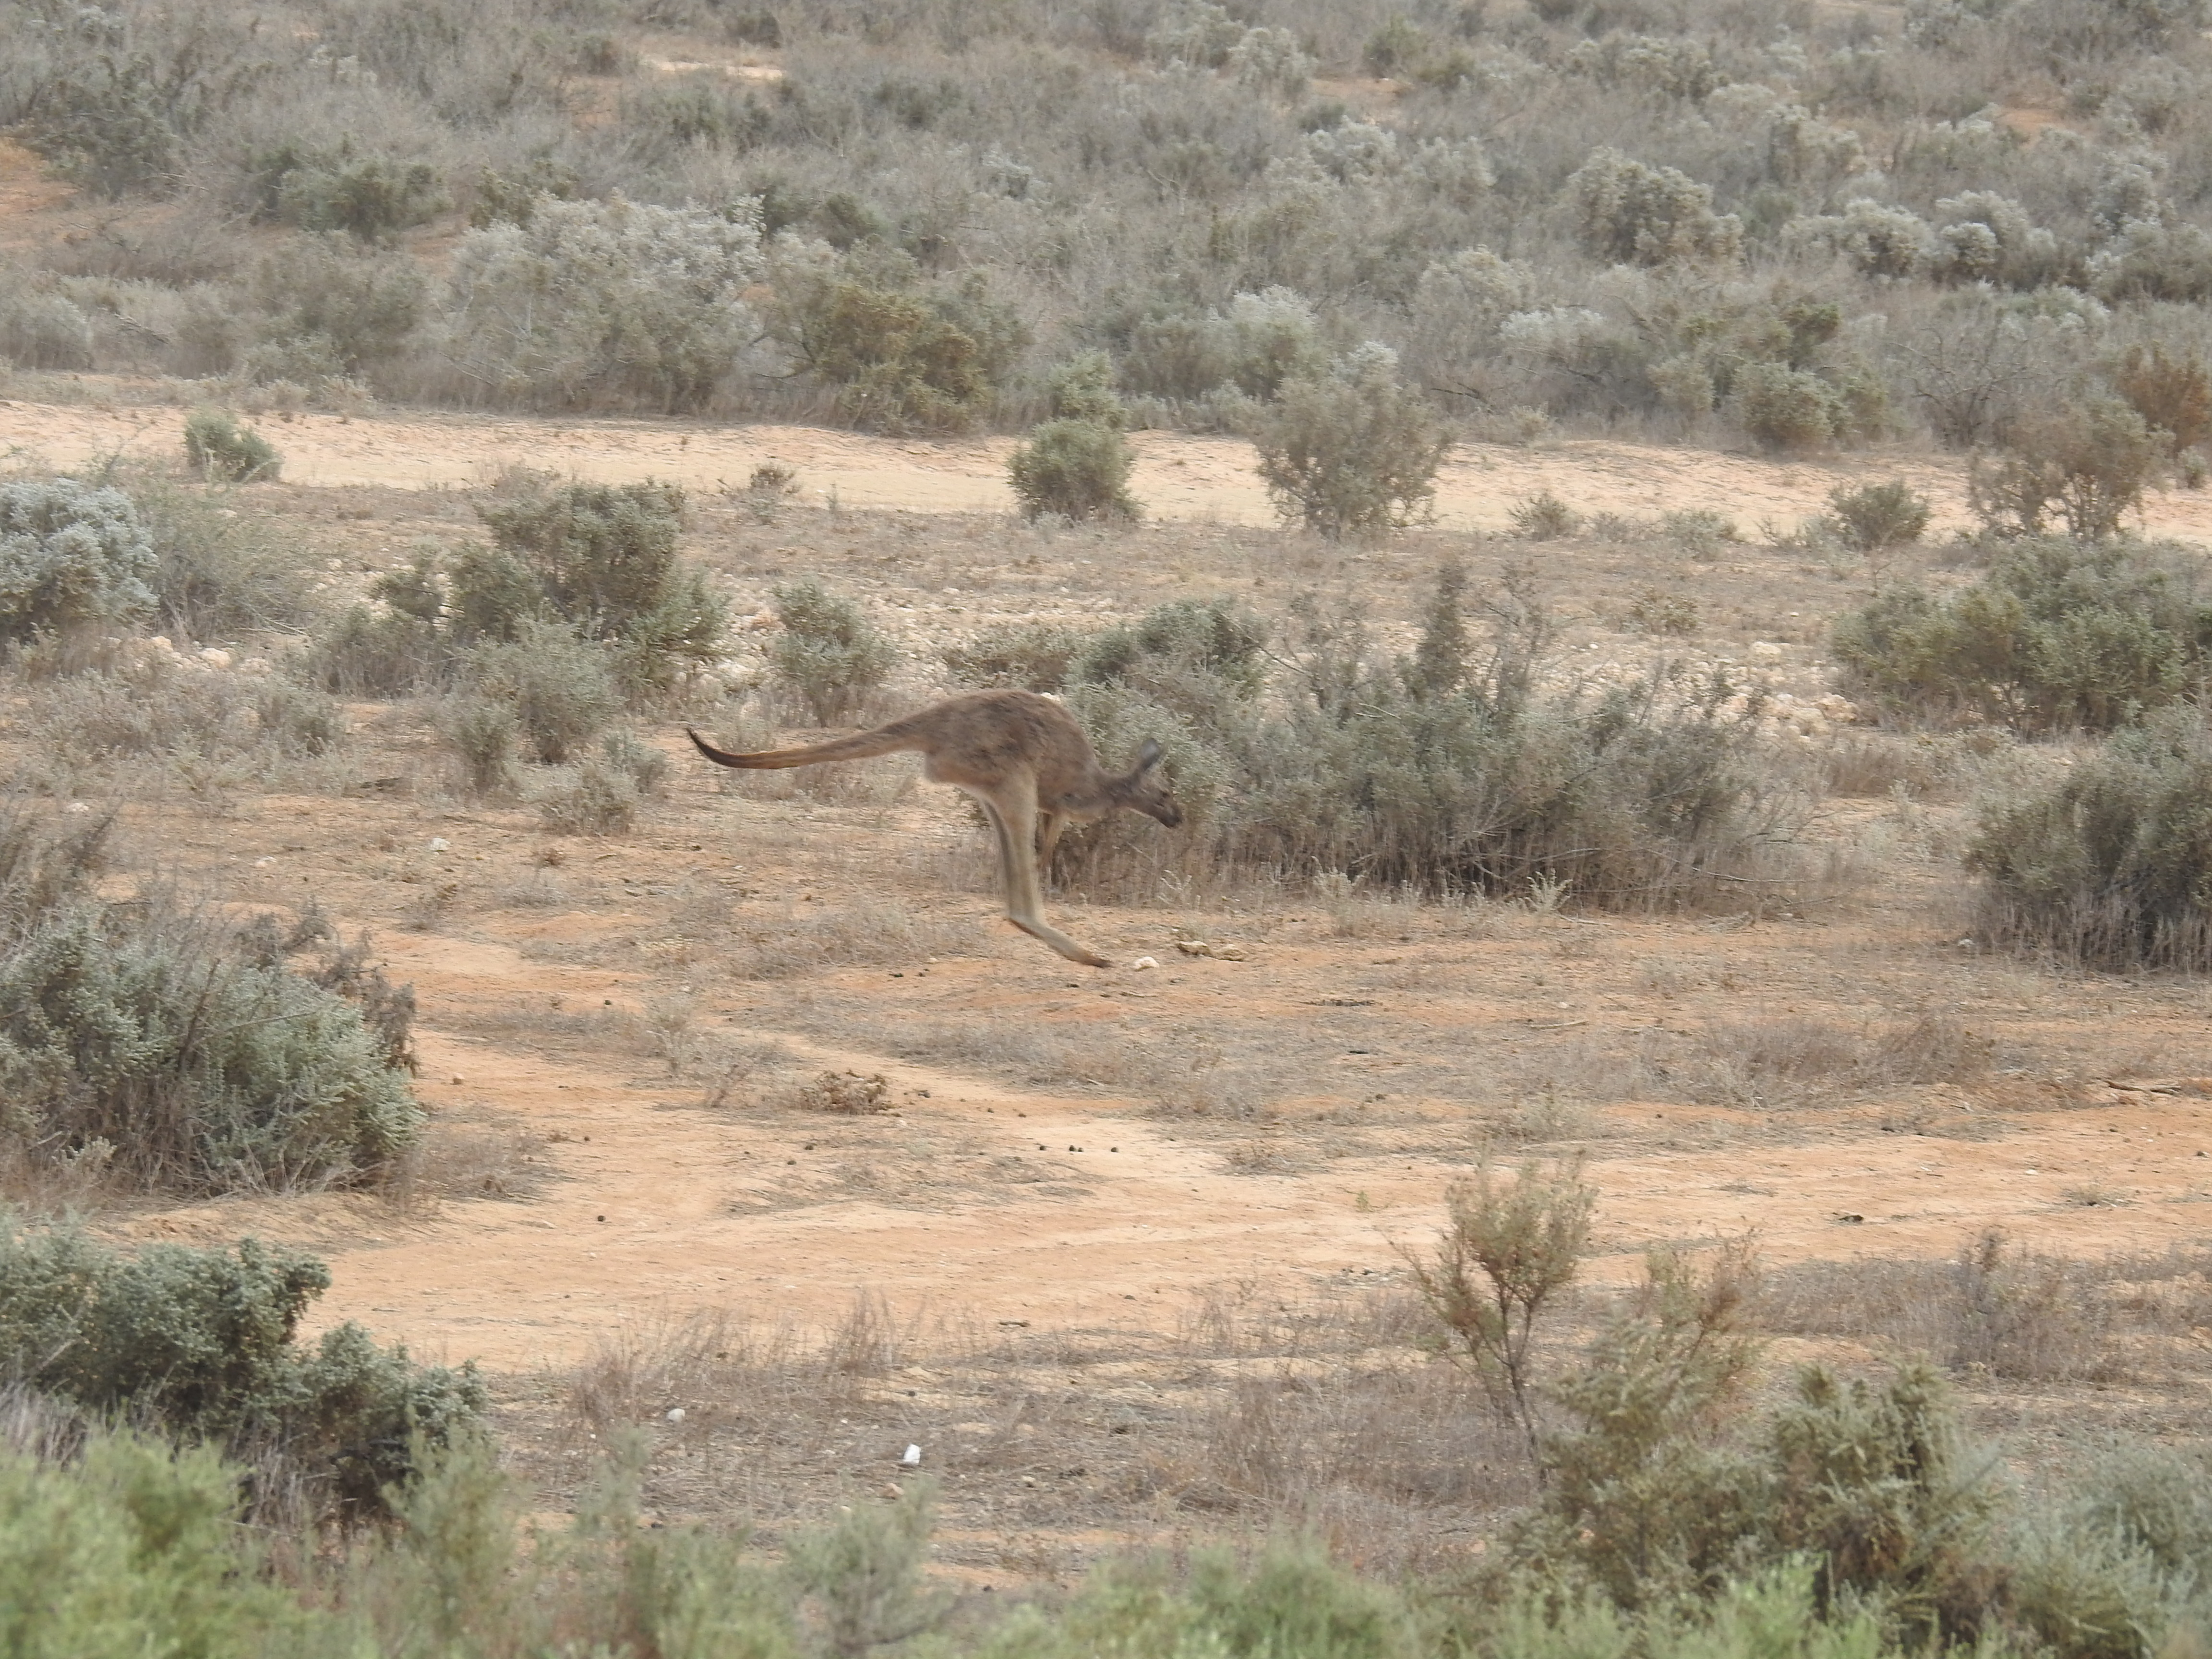 A kangaroo hopes through the saltbush shrubland